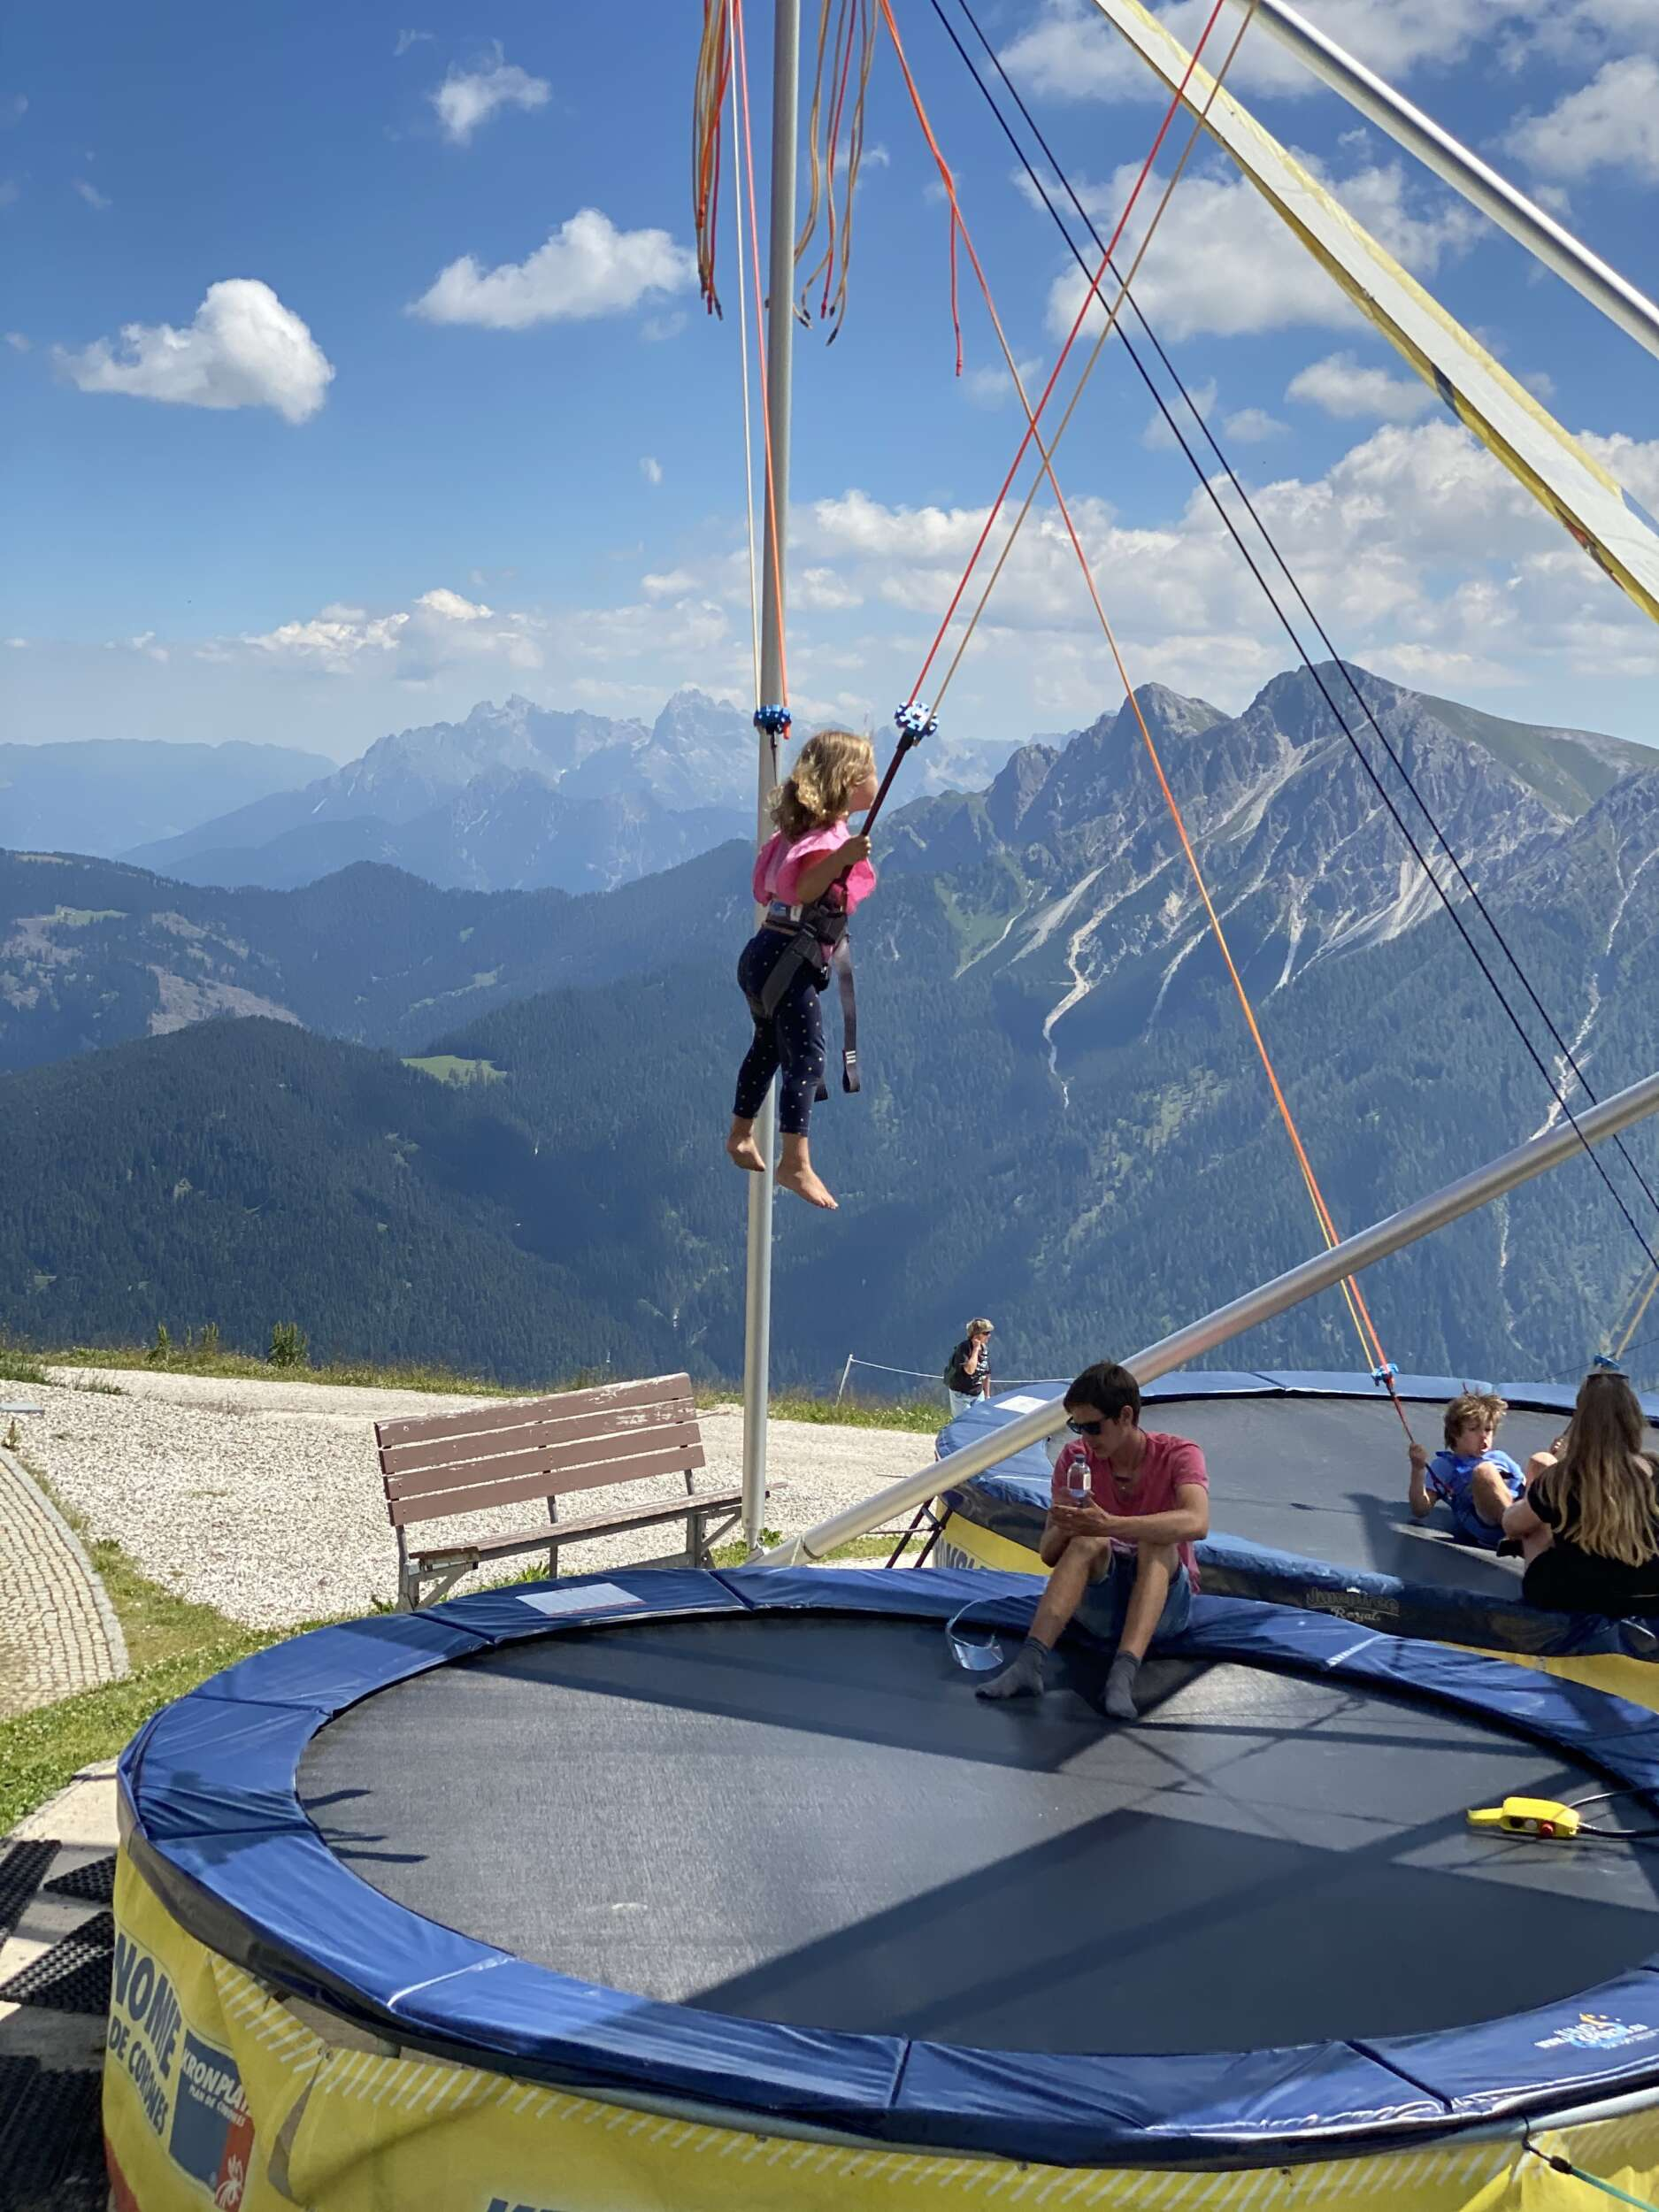 Girl on giant trampoline bungeejumping